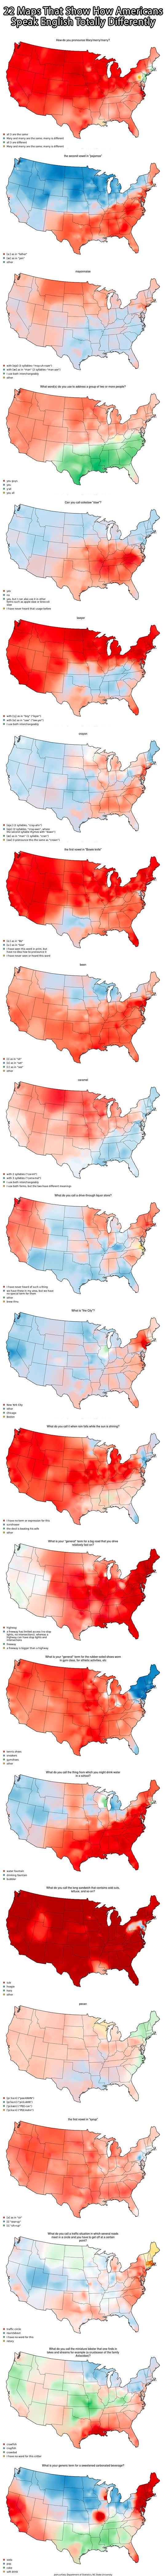 Americans Speak English Totally Differently From Each Other…